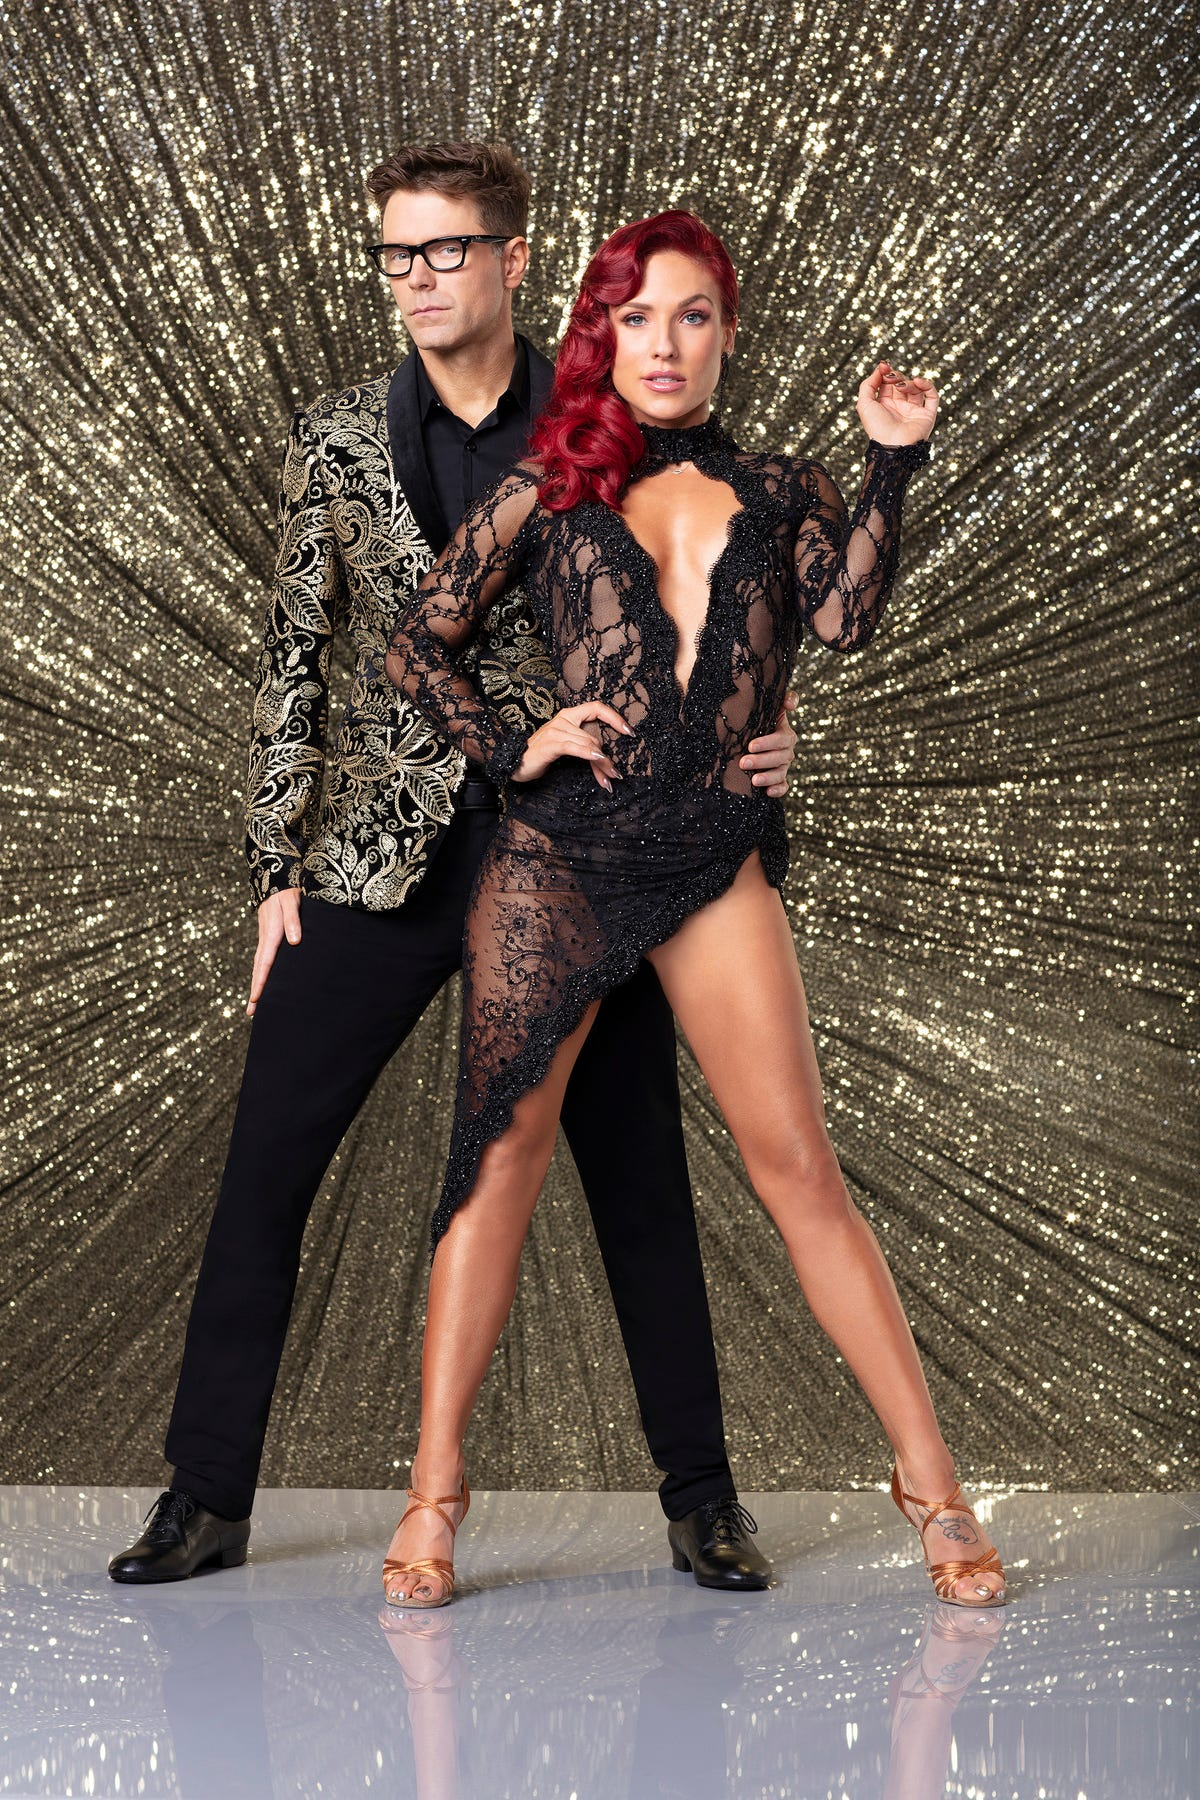 Dancing With The Stars: Bobby Bones' dance last night earns